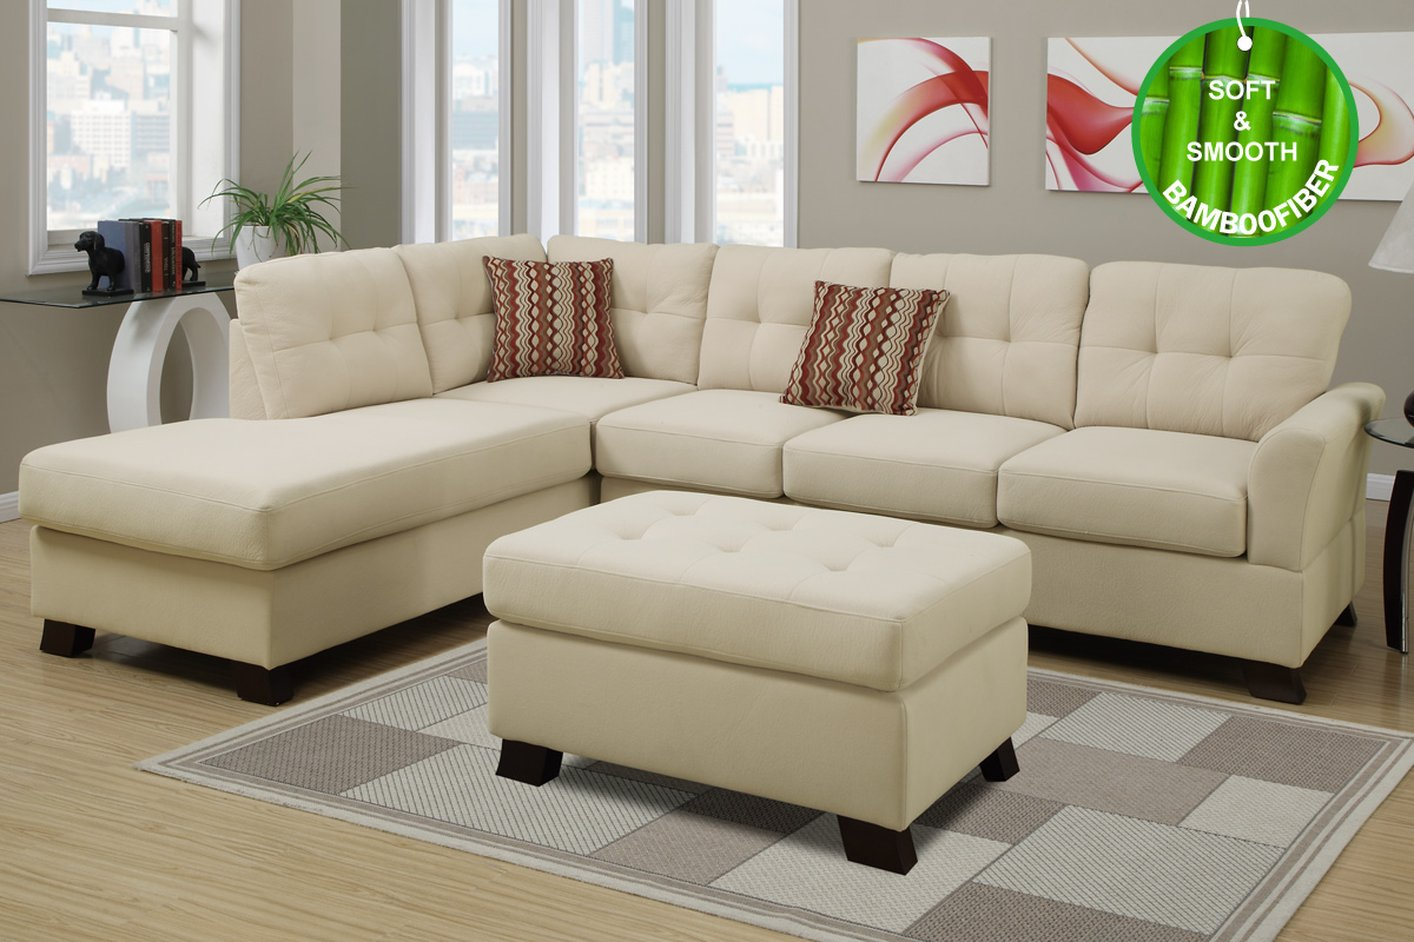 Beige Fabric Sectional Sofa and Ottoman Steal A Sofa Furniture